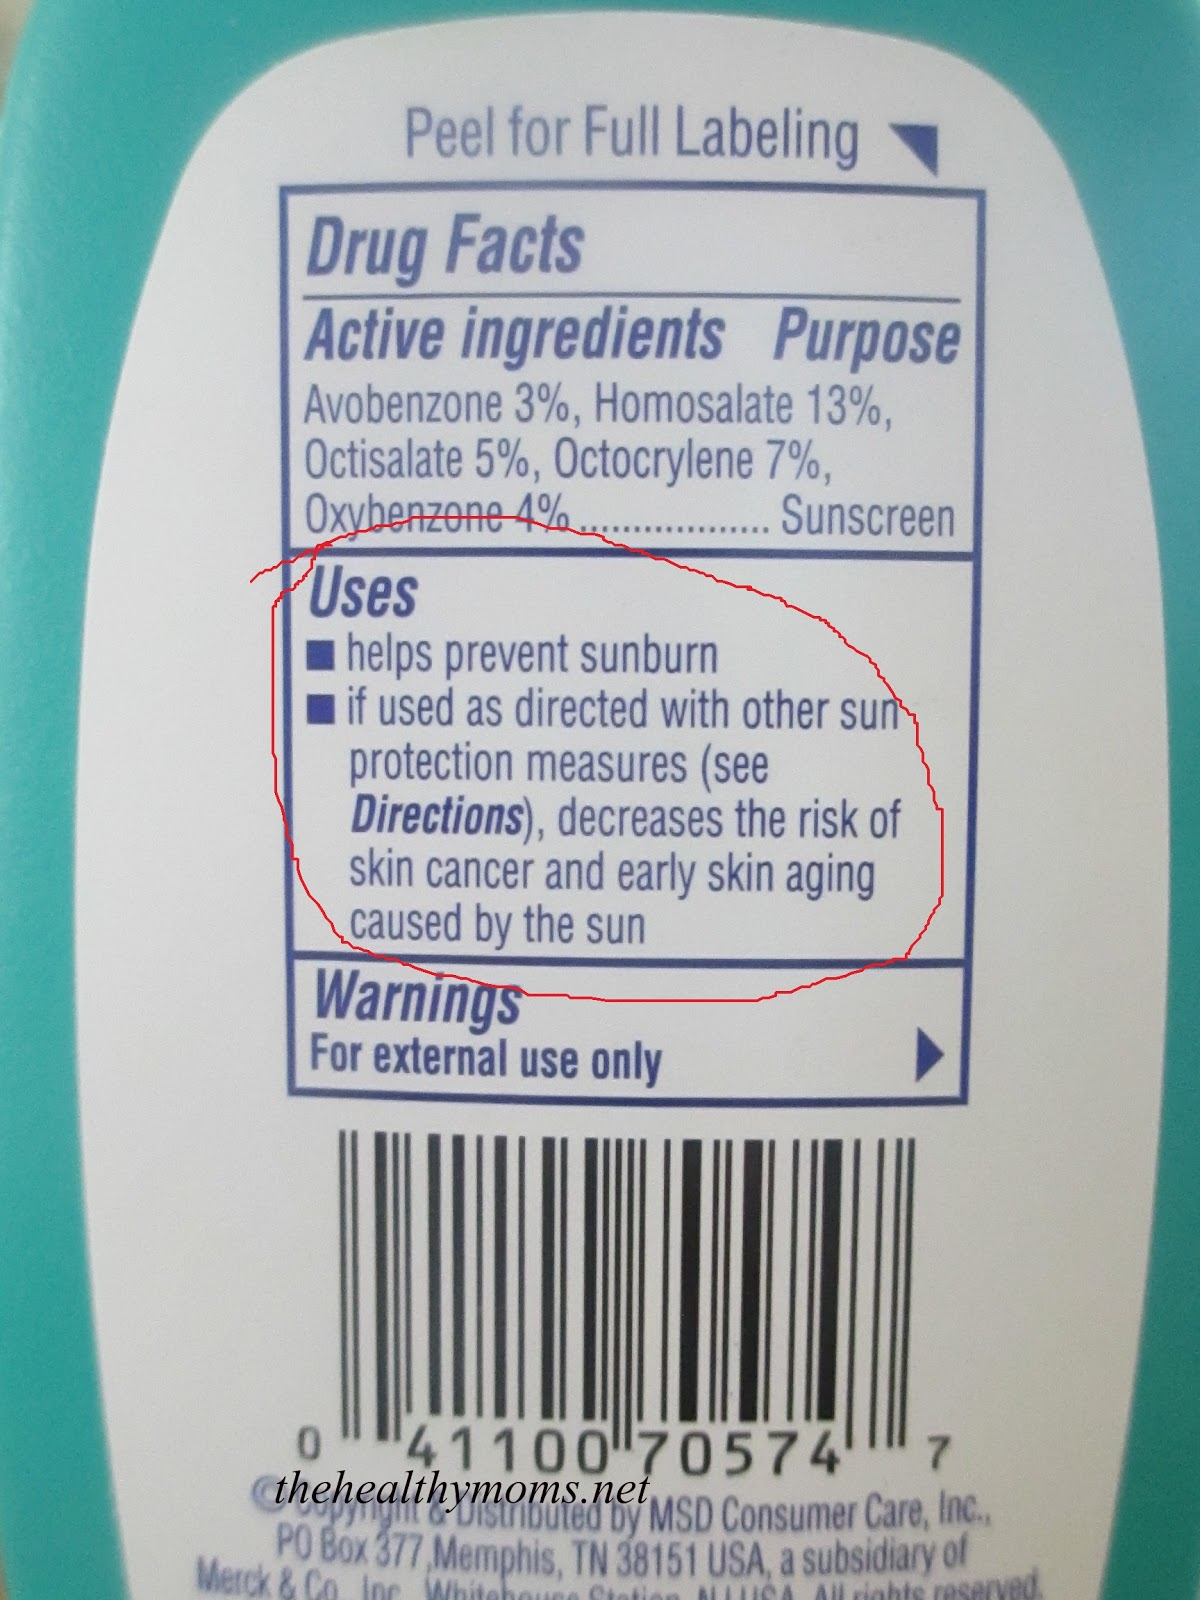 New FDA Regulations on Sunscreen Go in Effect this Summer - The Healthy Moms Magazine